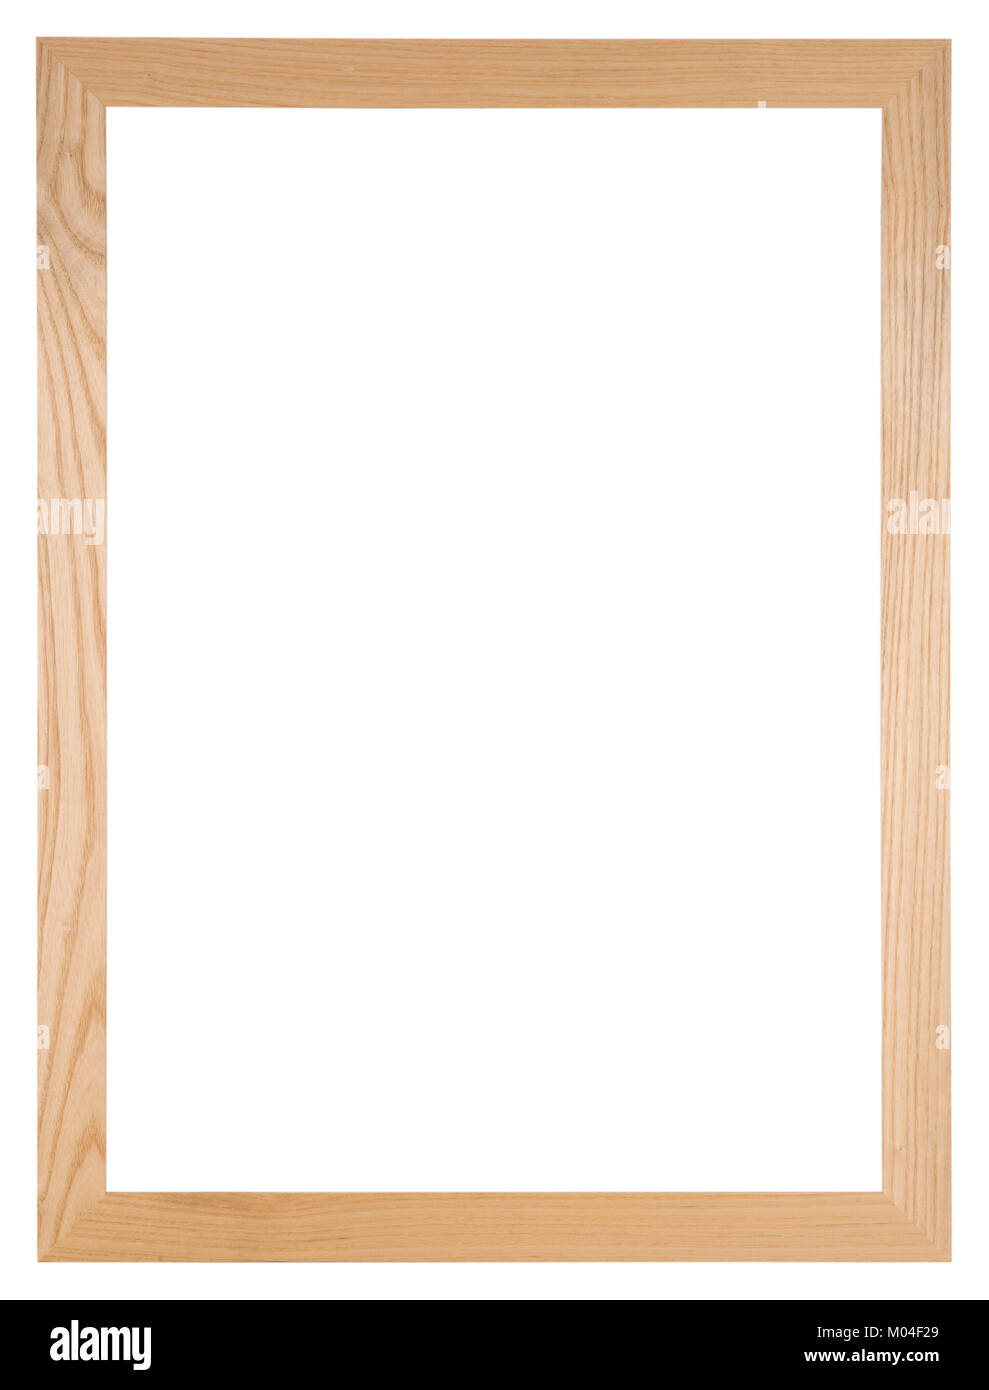 Empty picture frame isolated on white, portrait format in light oak wood - Stock Image